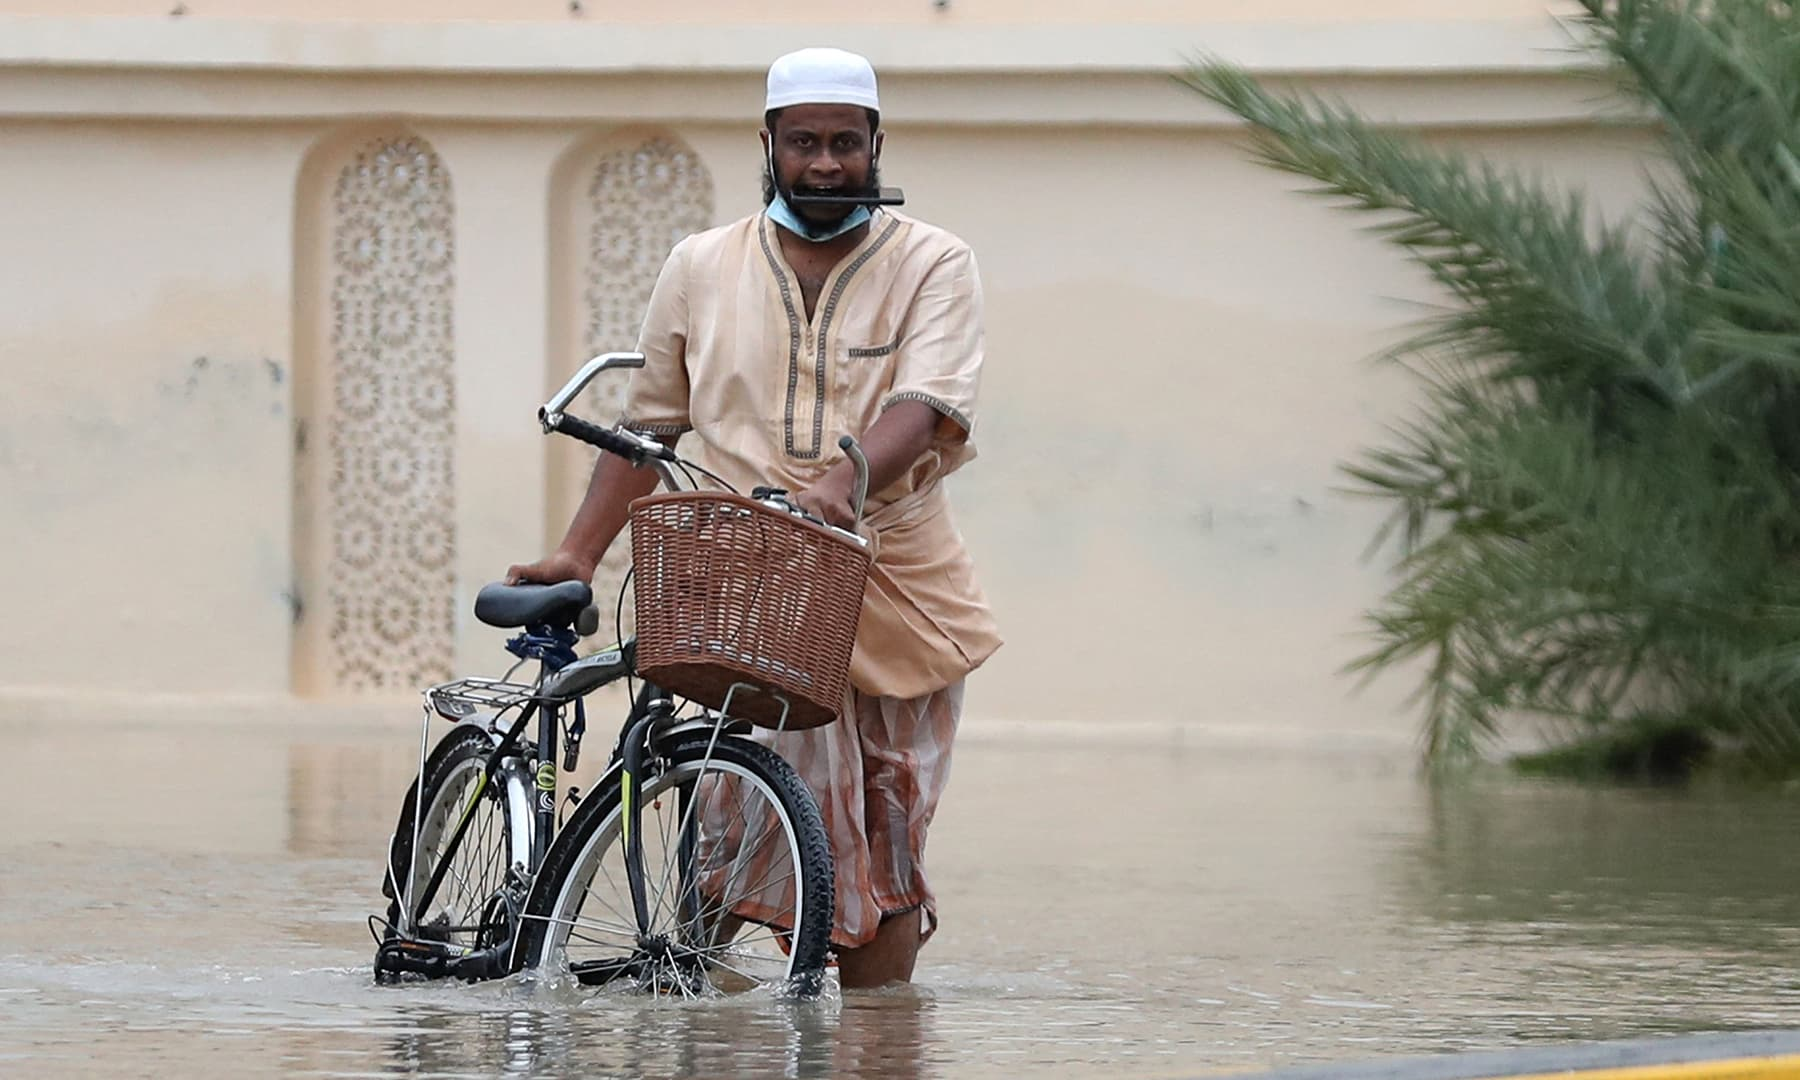 A man wades through a flooded street amid Cyclone Shaheen in Oman's capital Muscat on October 3, 2021. — AFP